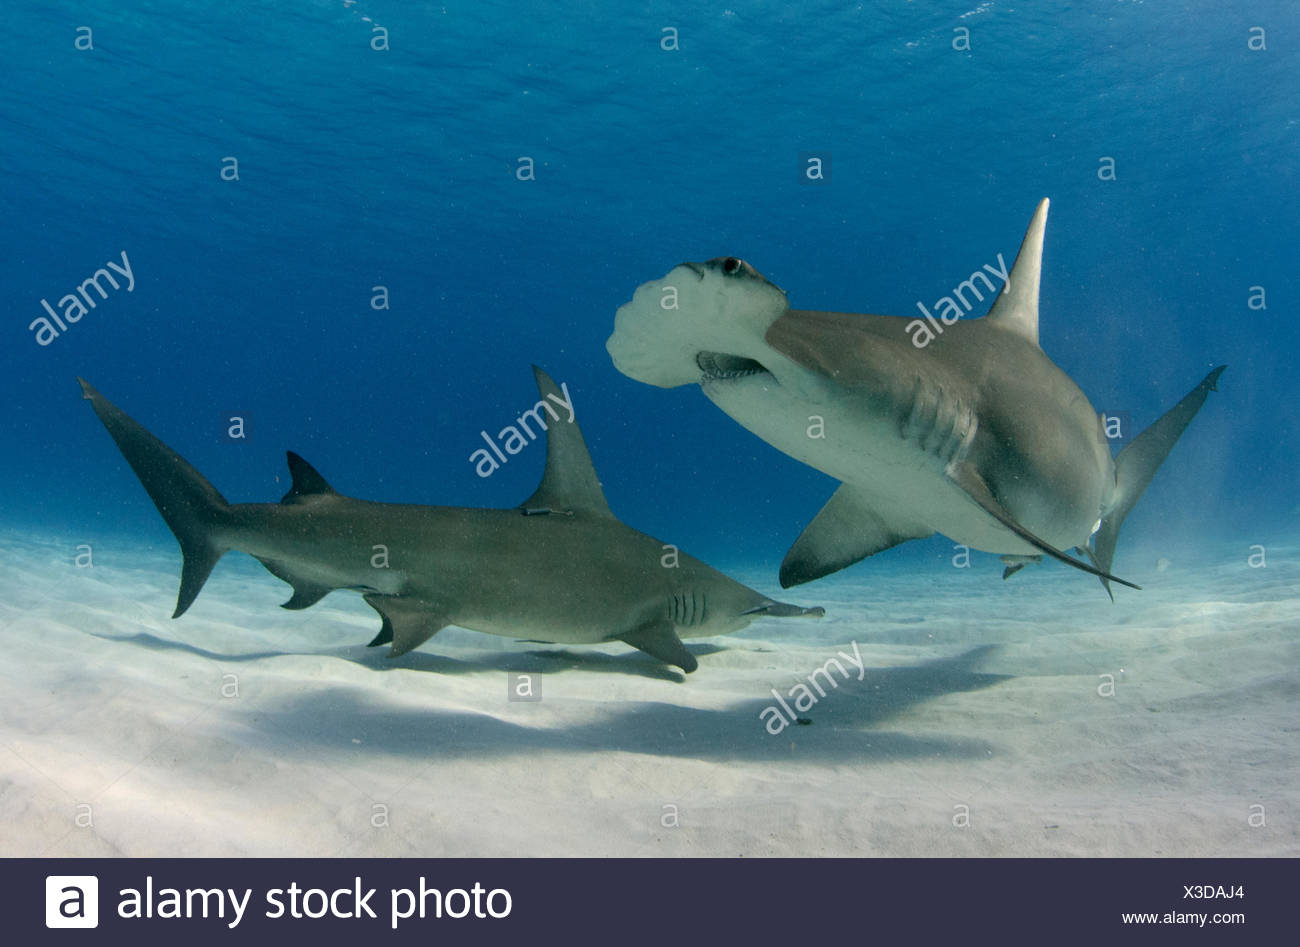 Great hammerhead sharks, a shark species endangered by overfishing for its fins - Stock Image